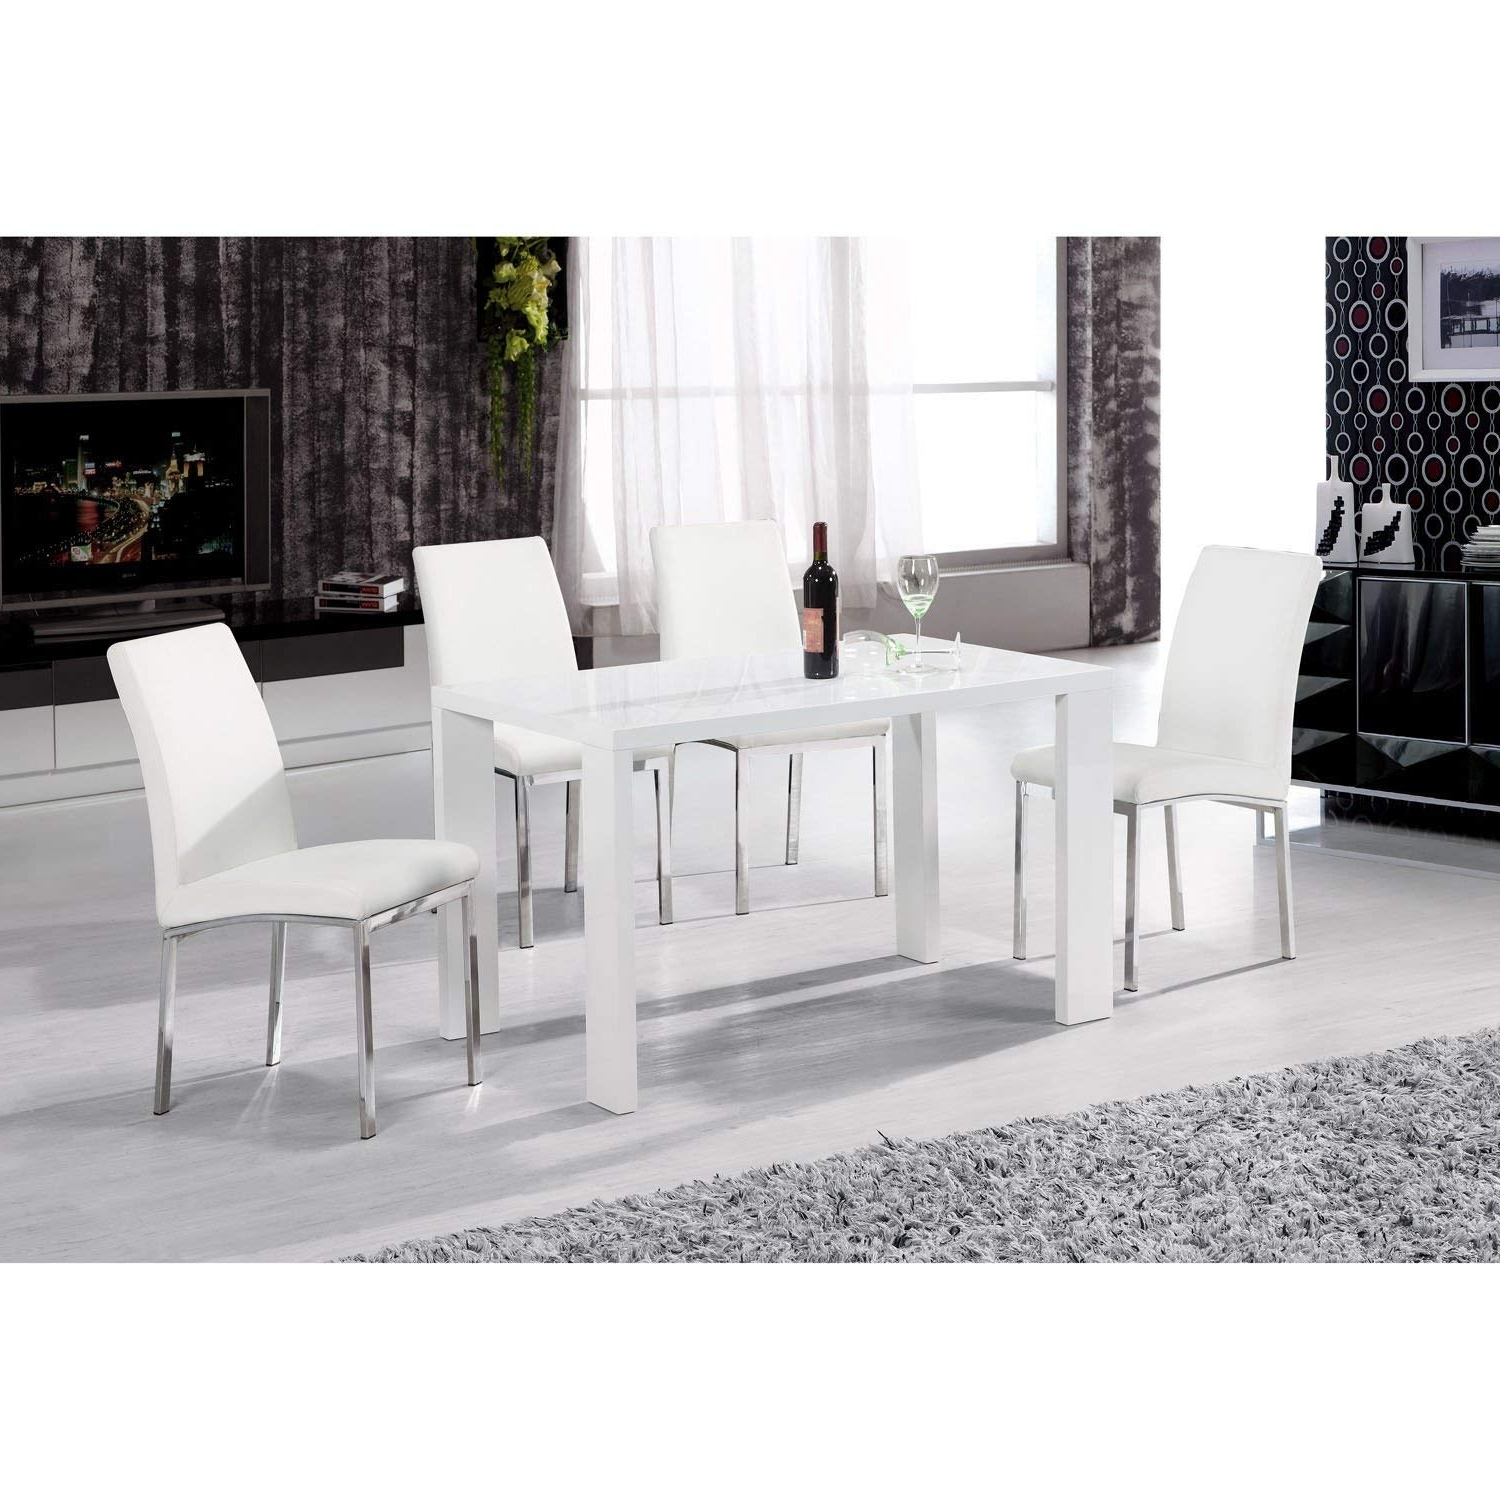 Most Popular Black Gloss Dining Tables And Chairs Pertaining To Heartlands Peru White High Gloss 130Cm Dining Table In Wood – Rectangular  Dining Table – White Dining Table (Gallery 25 of 25)